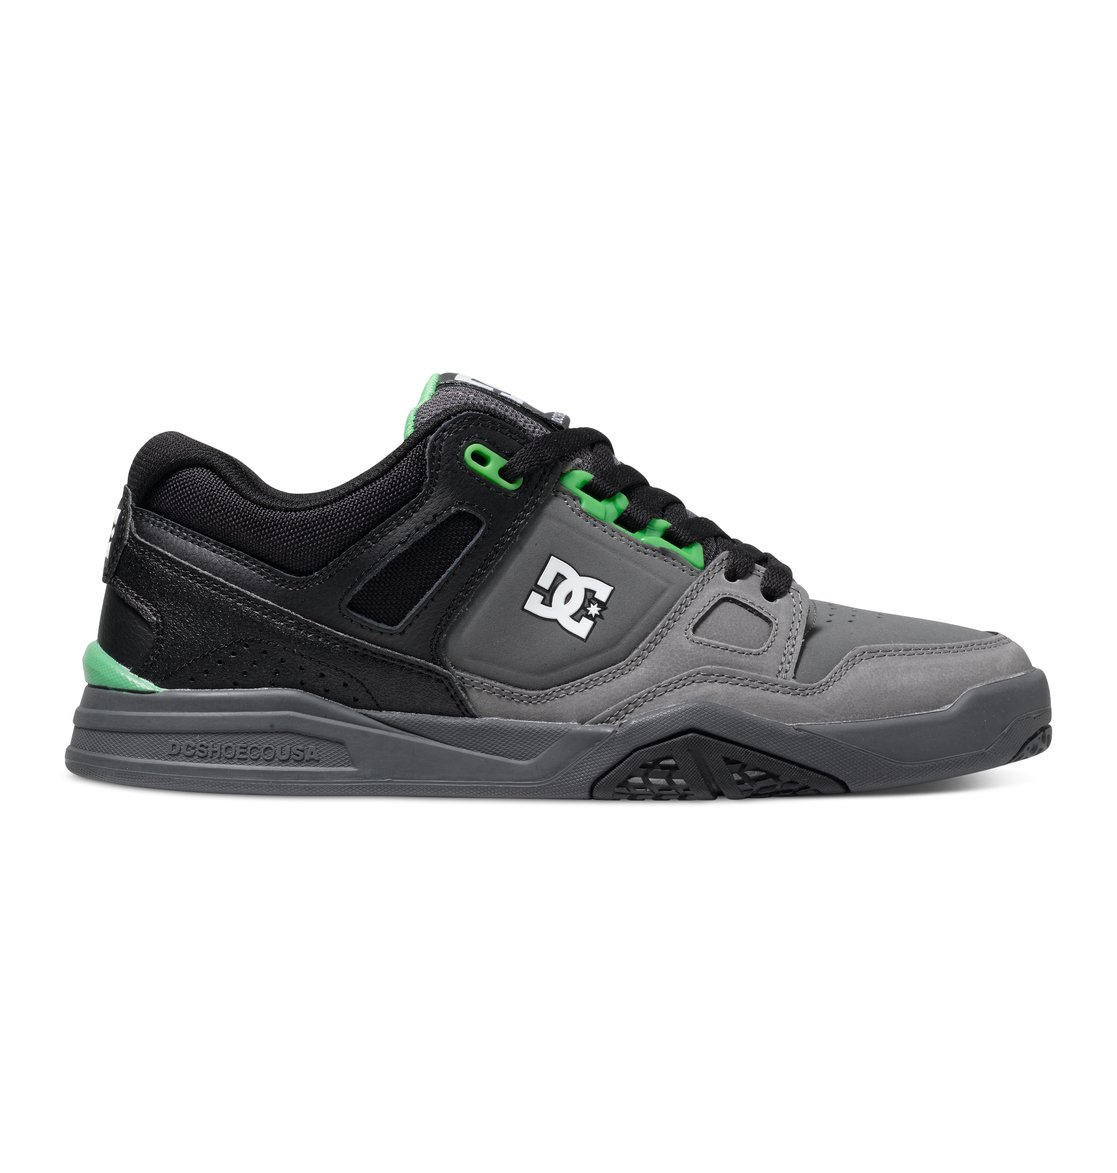 DC SHOES STAG 2 XSSN